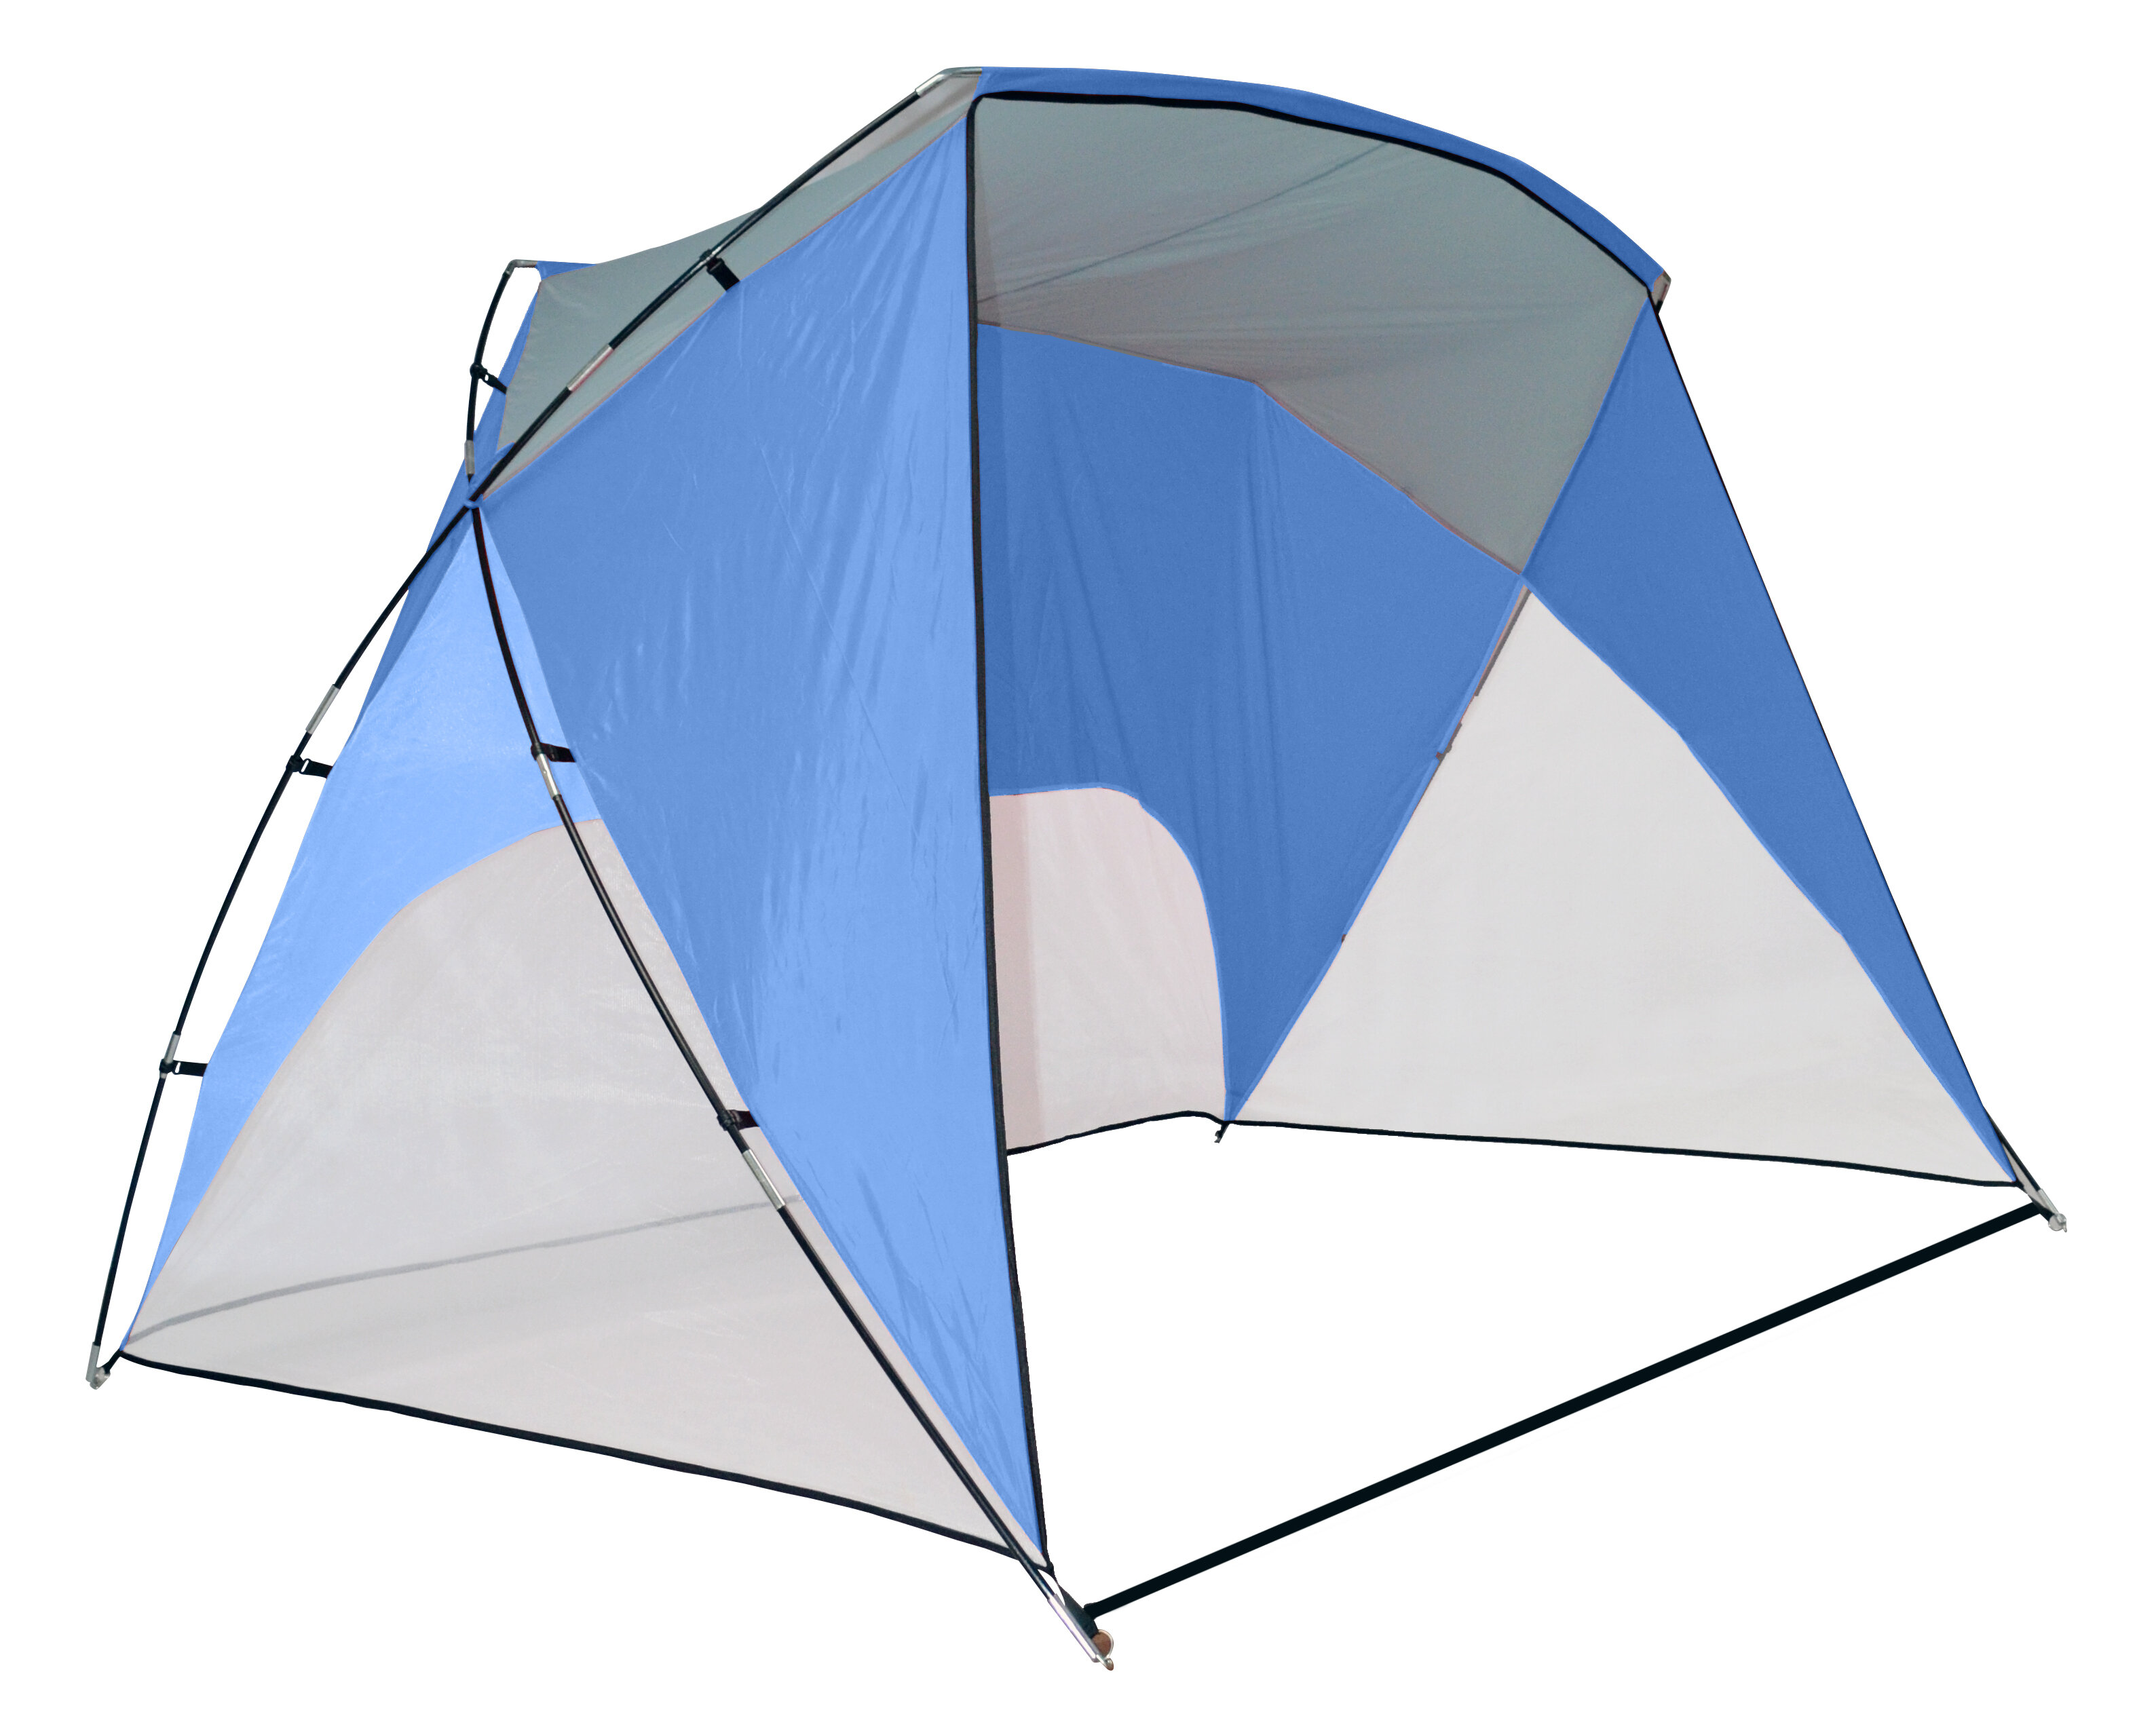 sc 1 st  Wayfair & CaravanCanopy Sports Shelter 2 Person Tent u0026 Reviews | Wayfair